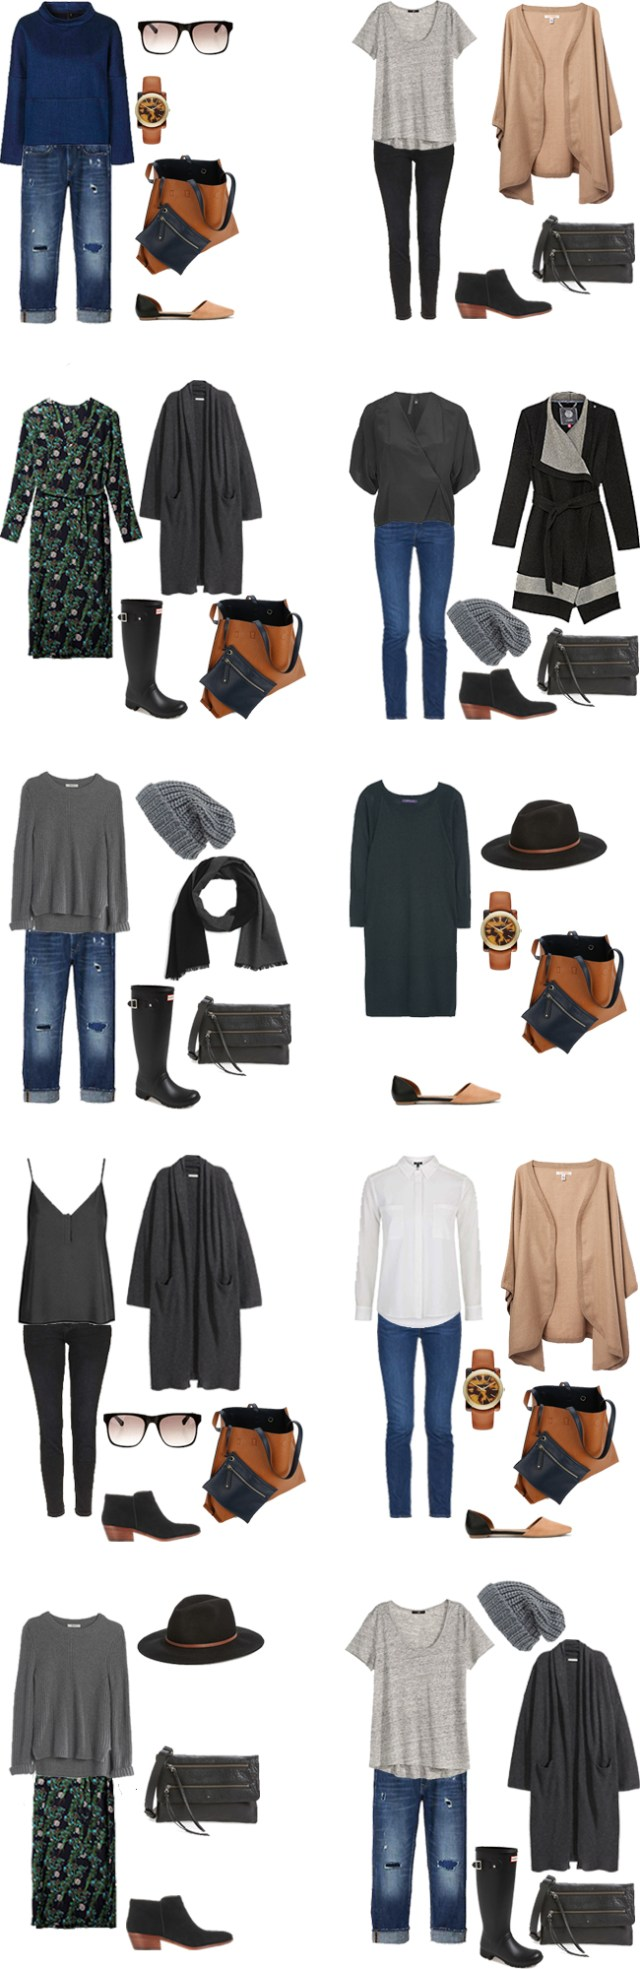 What to Wear in Italy and Switzerland Outfits 1-10 #travellight #packinglight #traveltips #travel